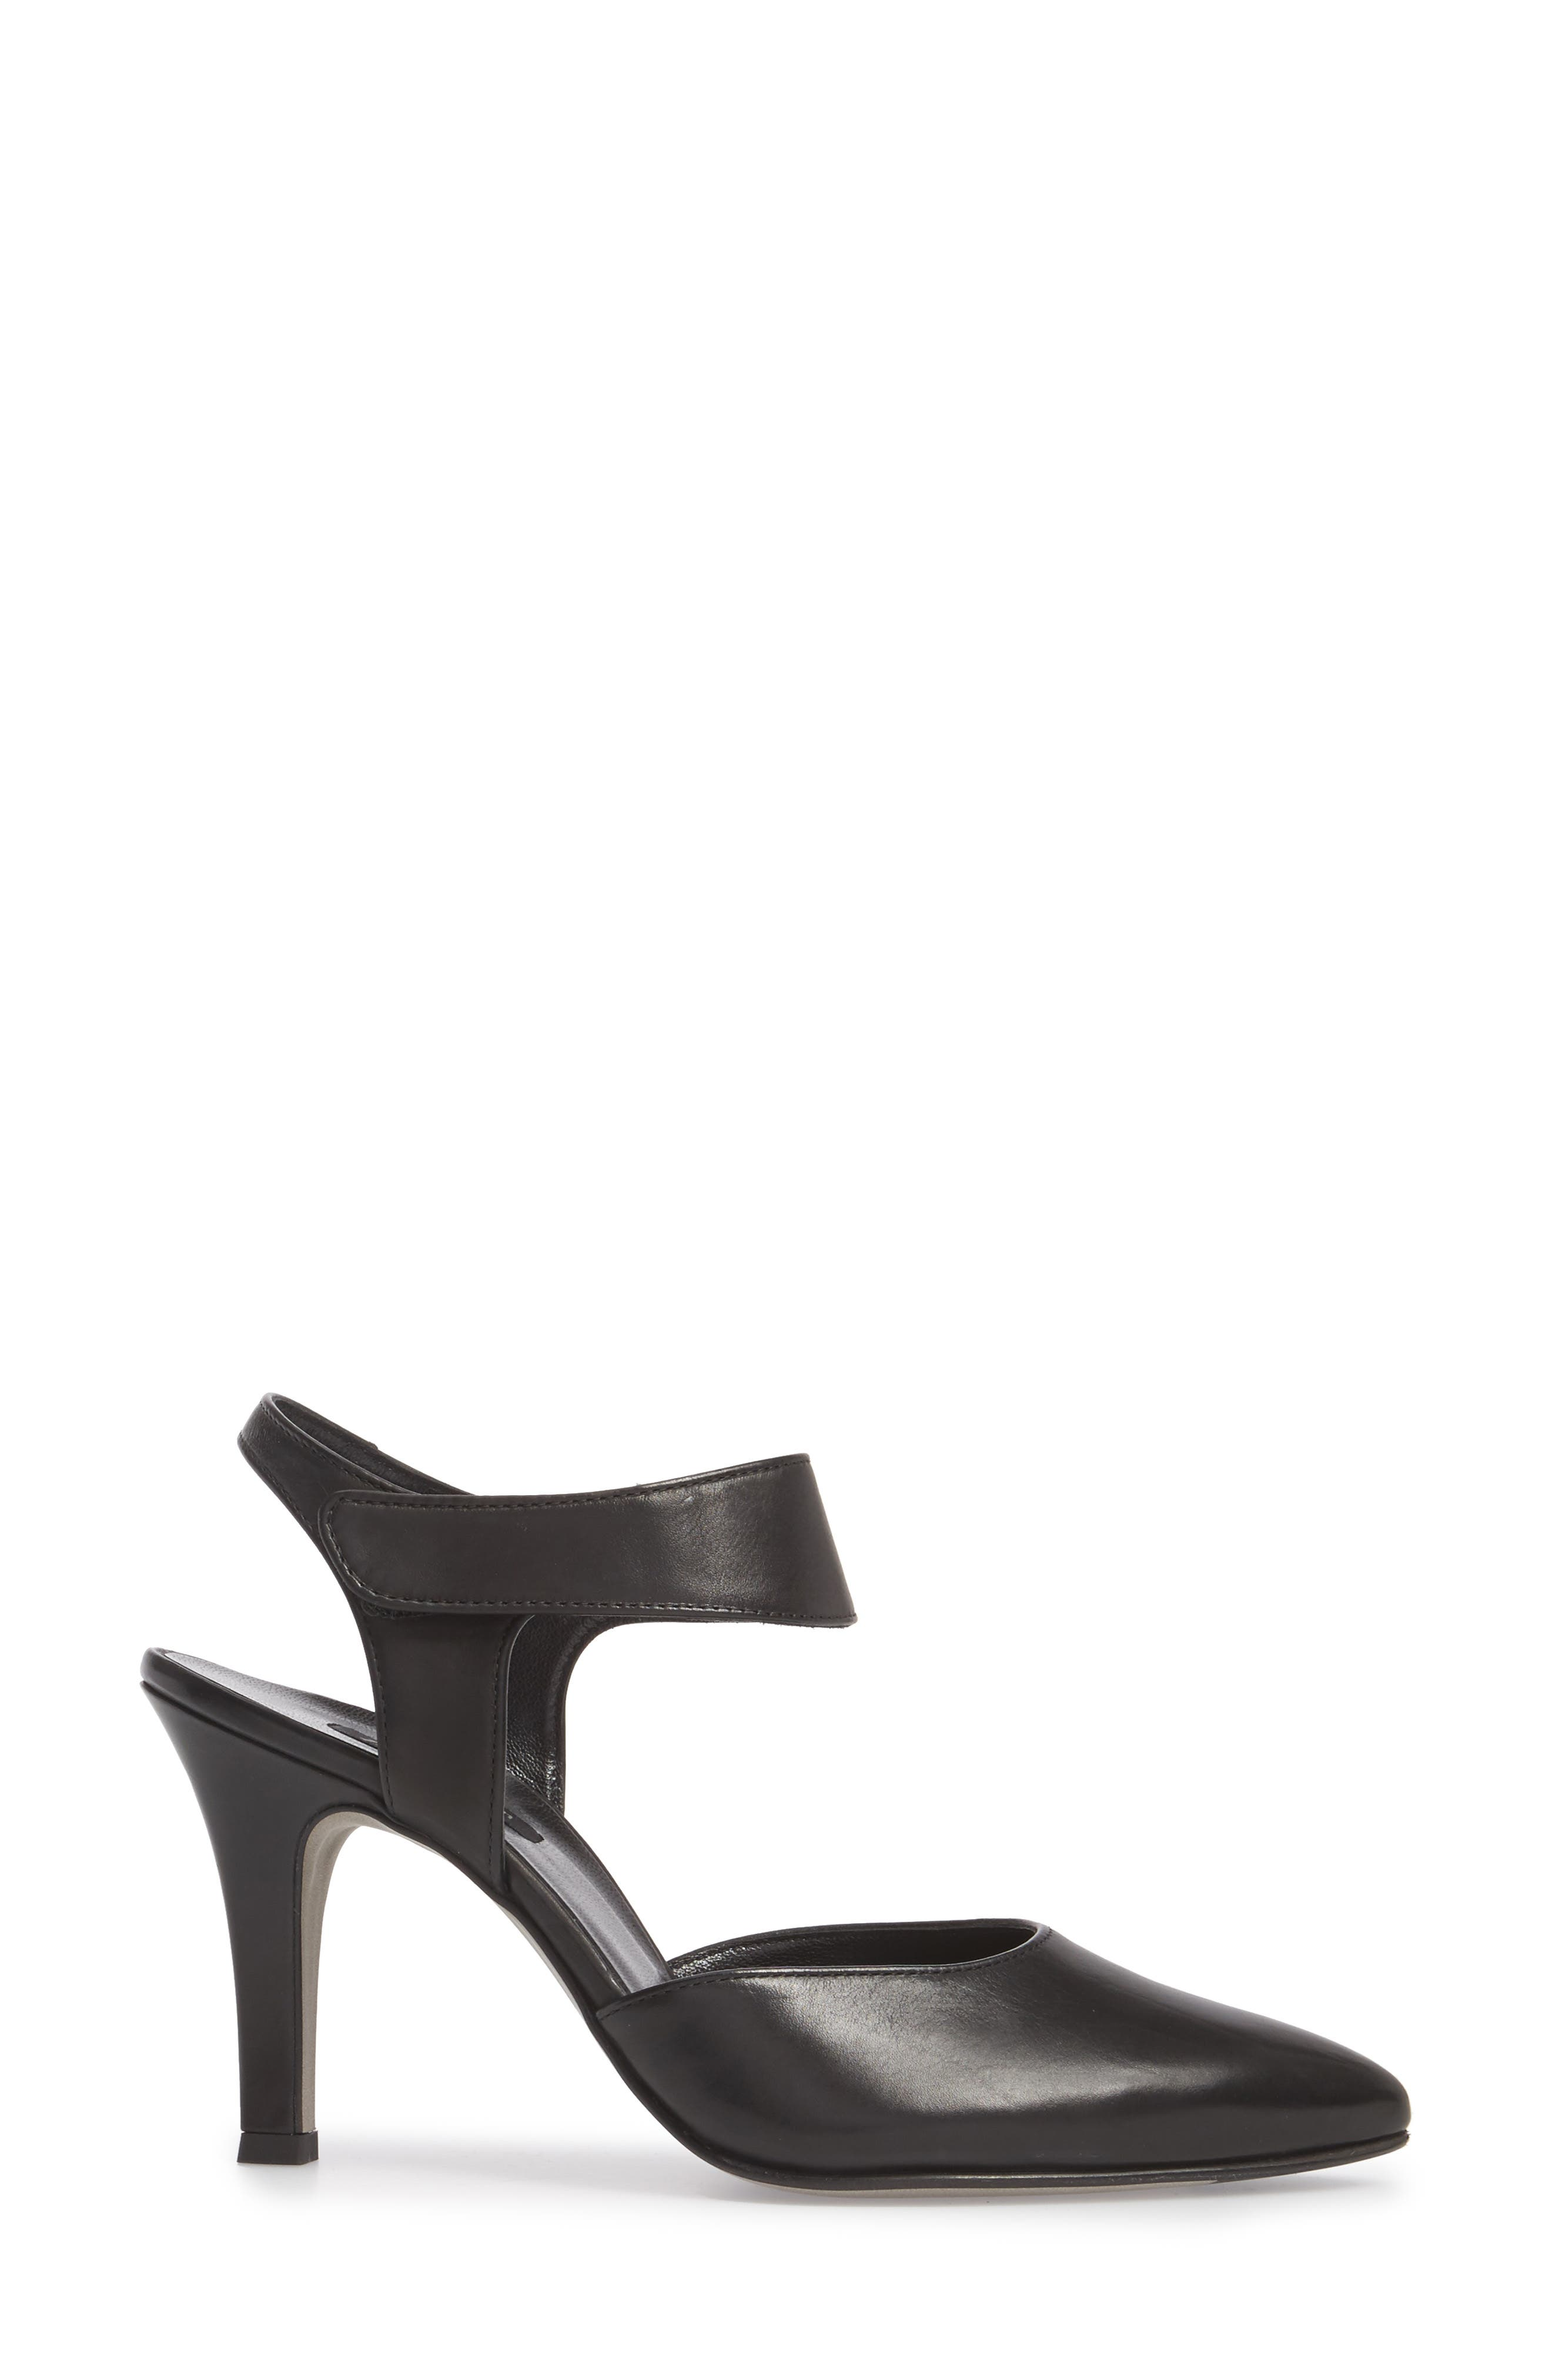 PAUL GREEN, Nicolette Pointy Toe Pump, Alternate thumbnail 3, color, BLACK LEATHER